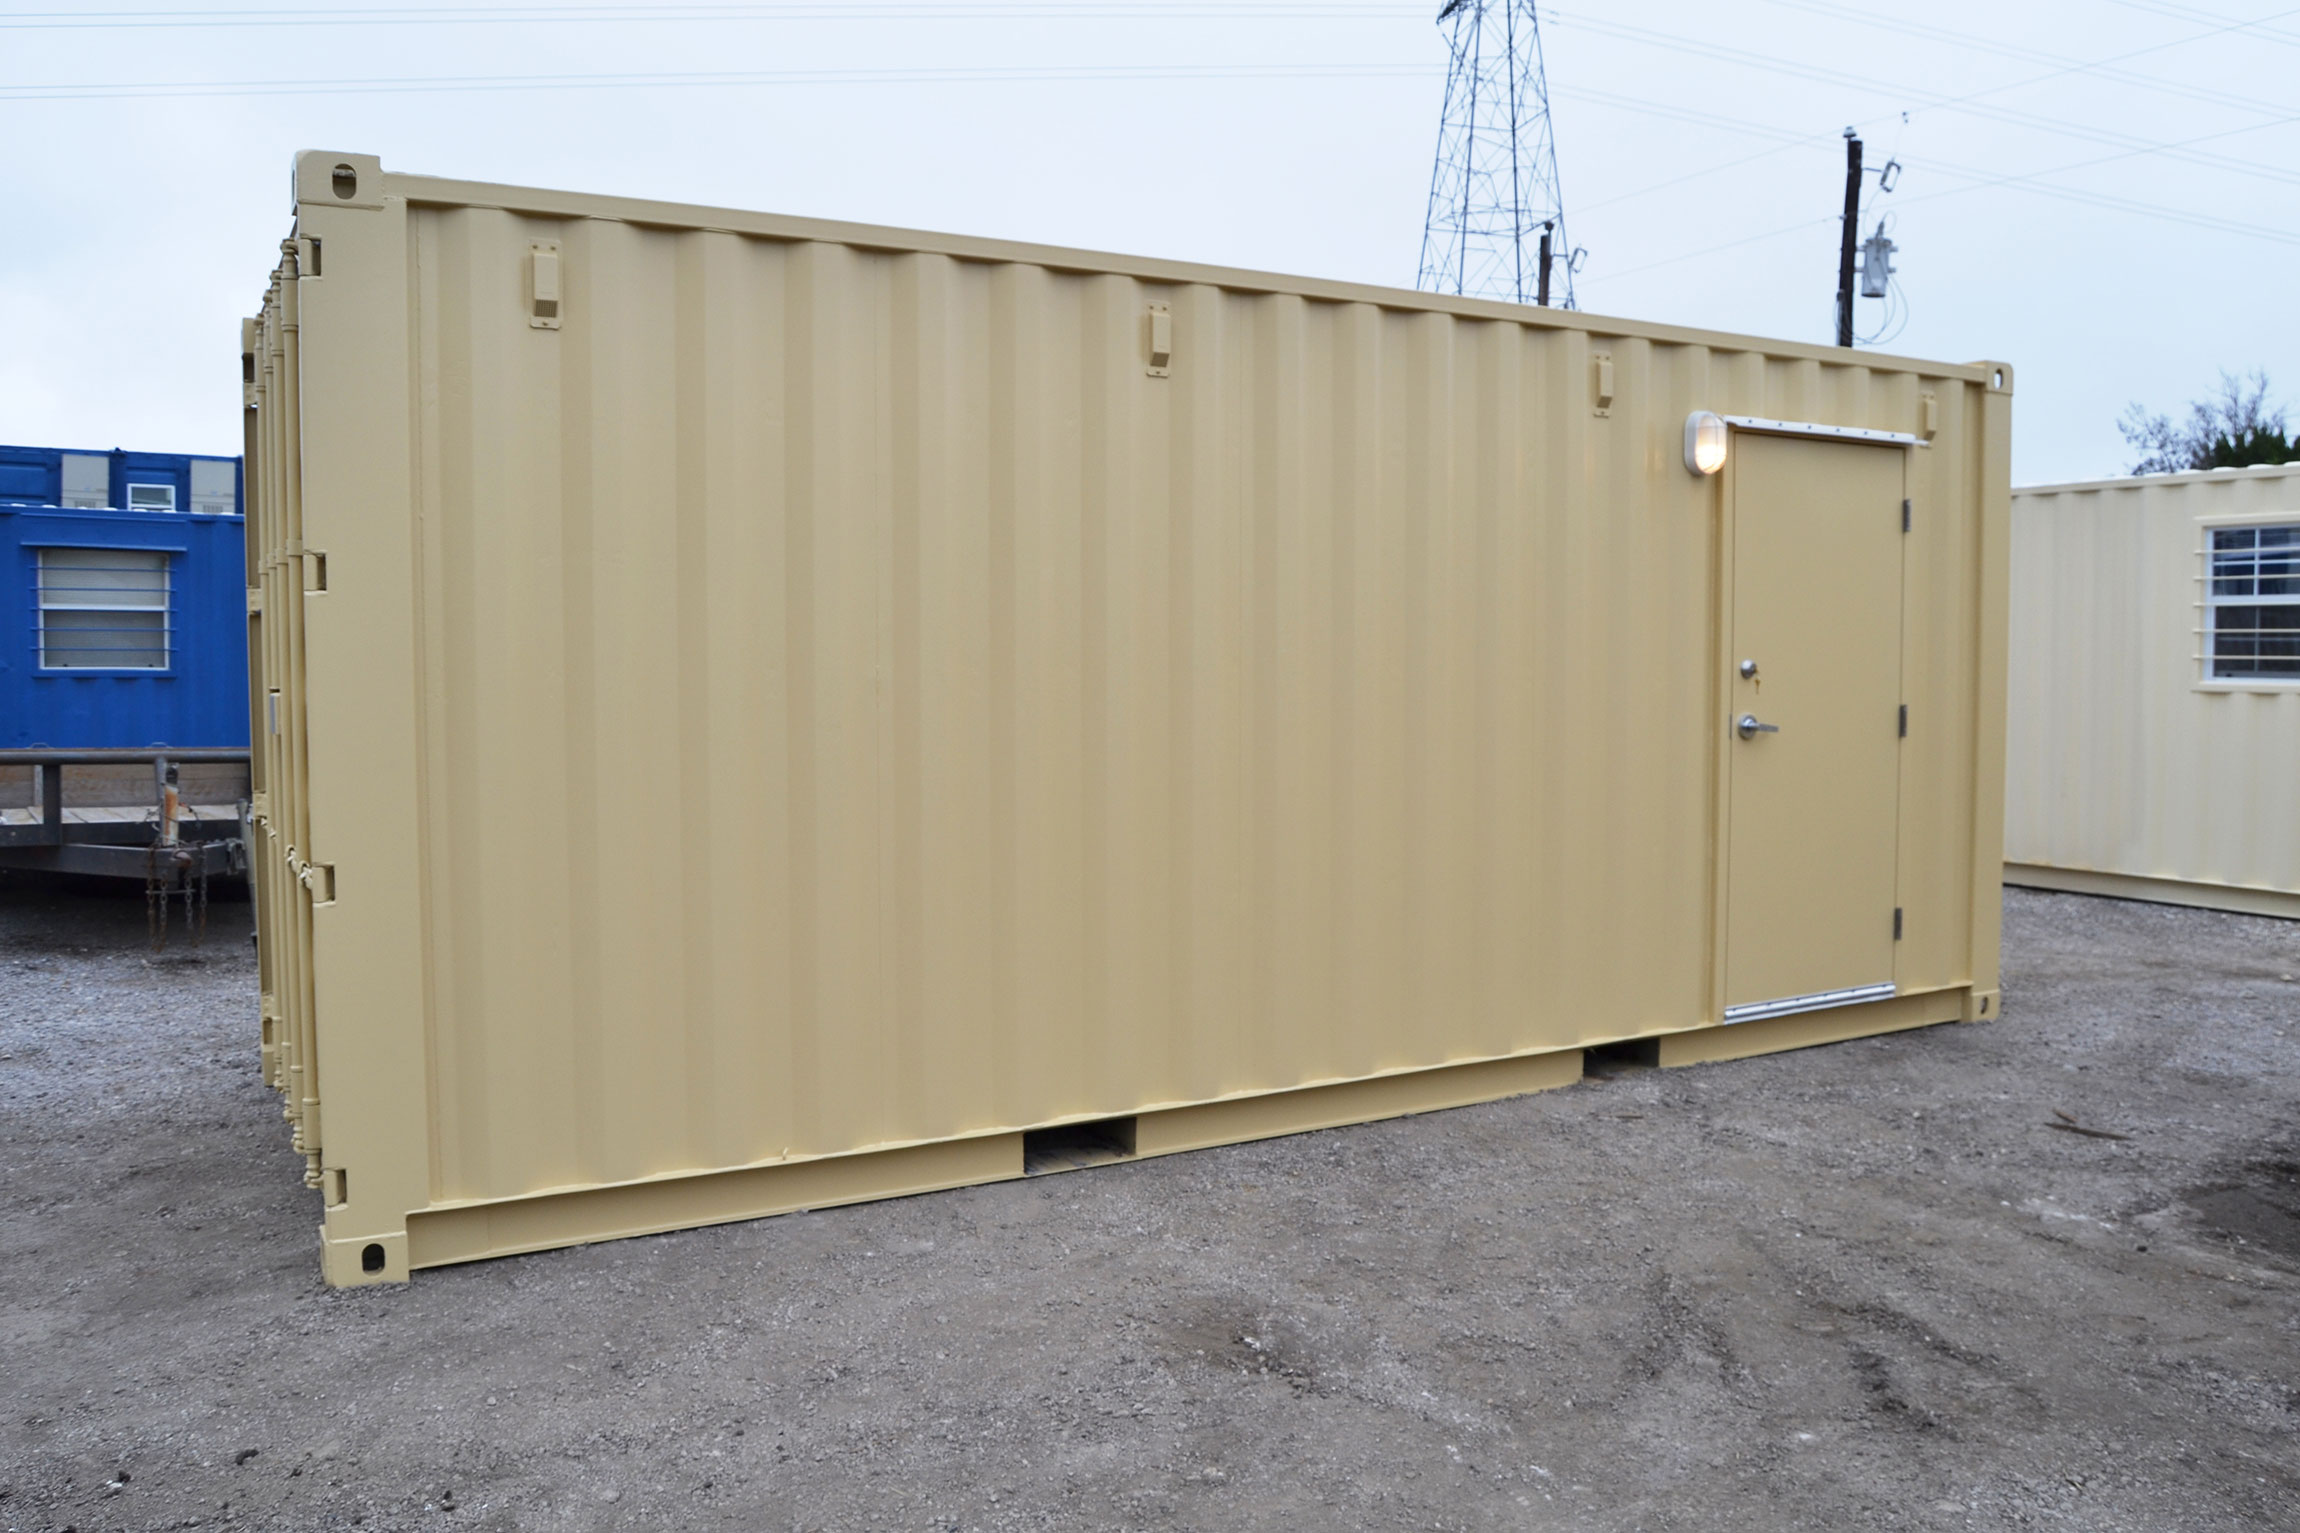 Mobile-PPE-Storage-Containers